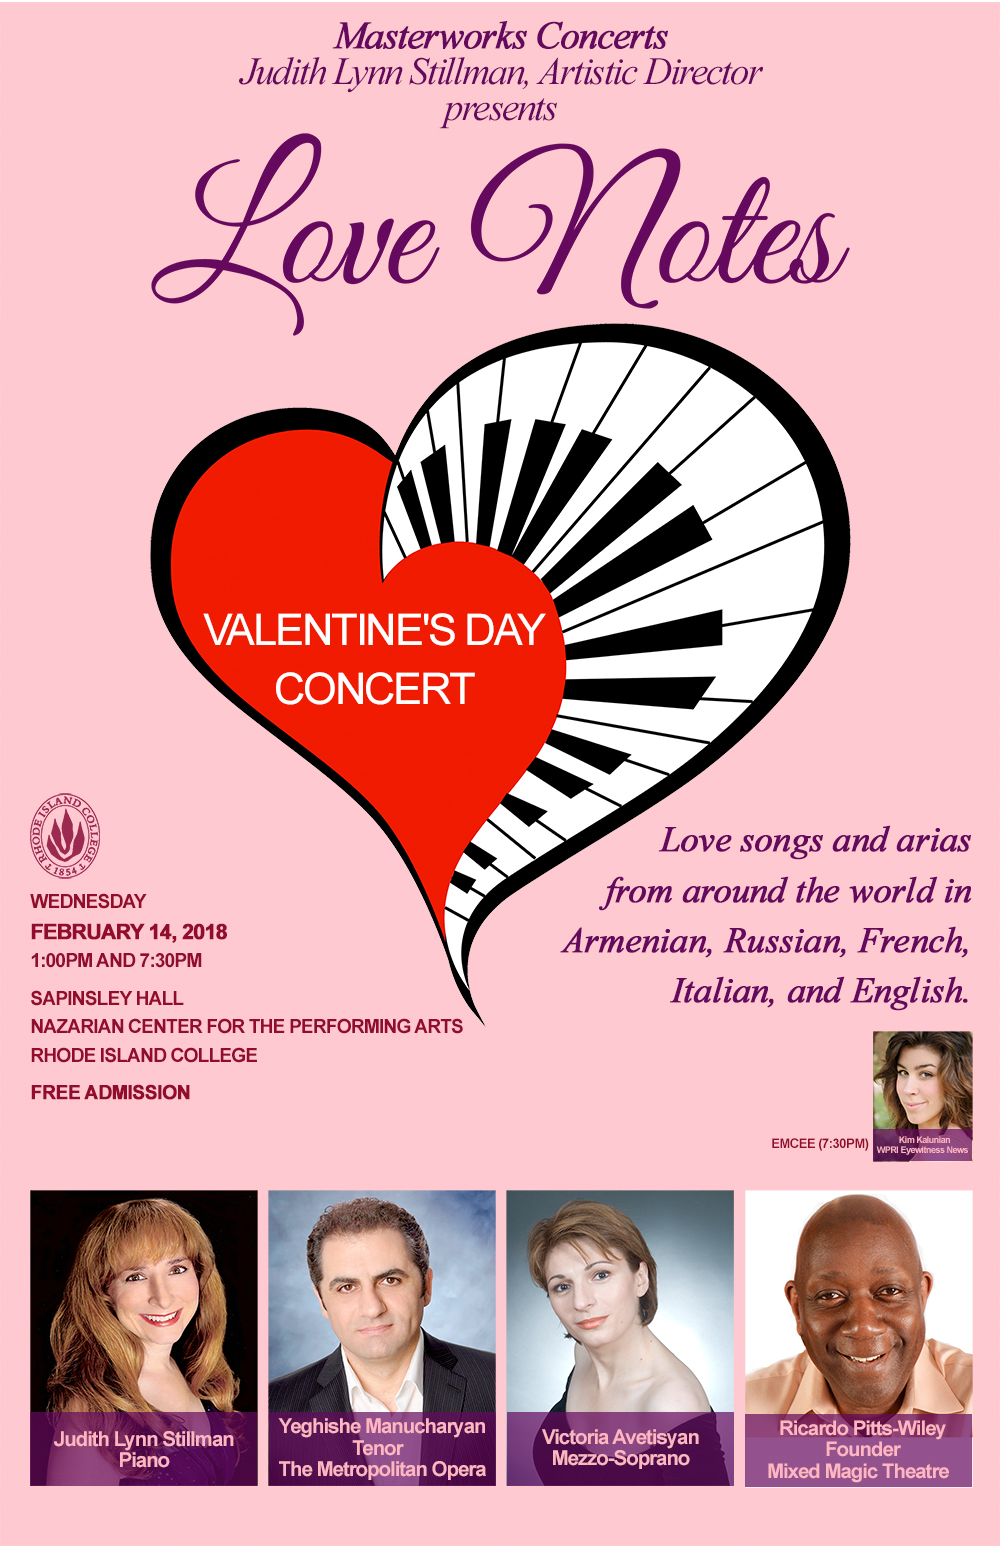 love notes valentines day concert with armenian love songs and more featuring tenor yeghishe manucharyan from the metropolitan opera